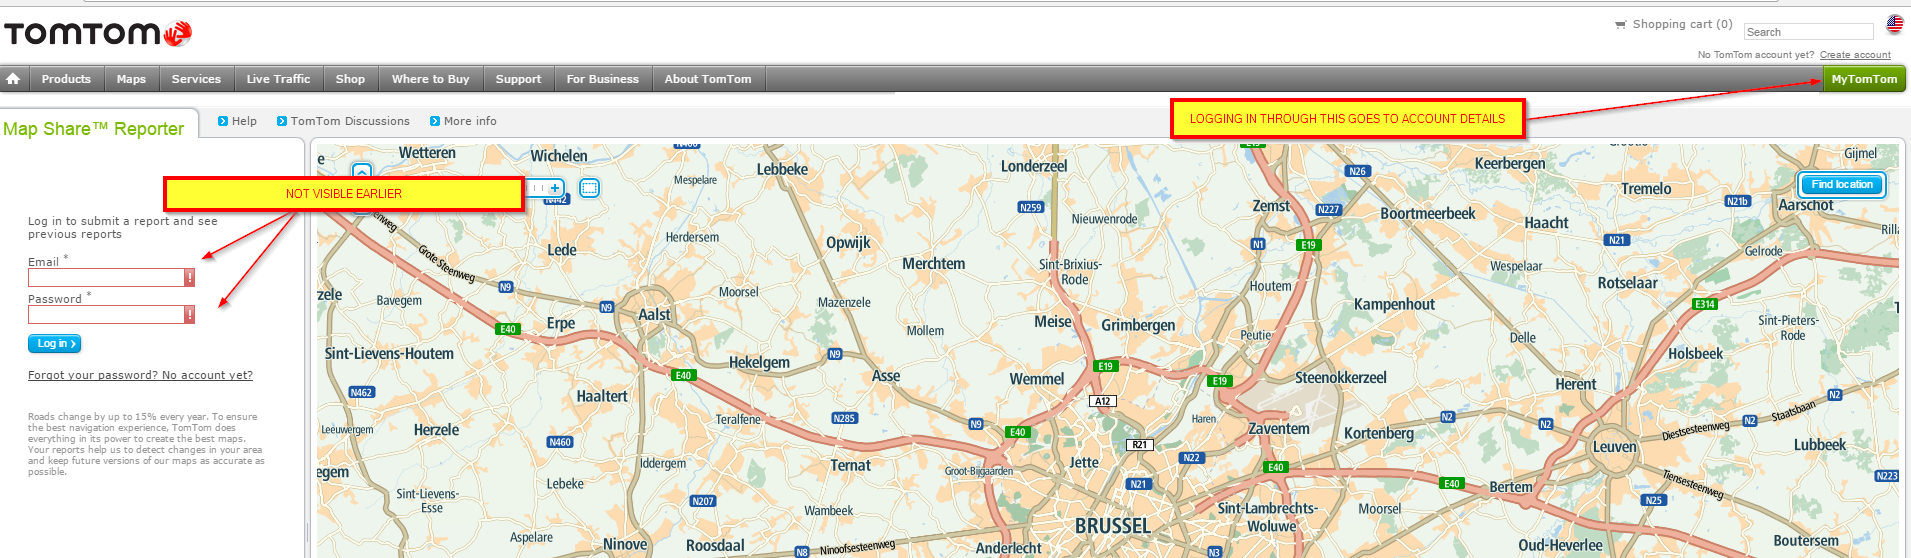 mapshare tools not working latest chrome firefox or IE logging